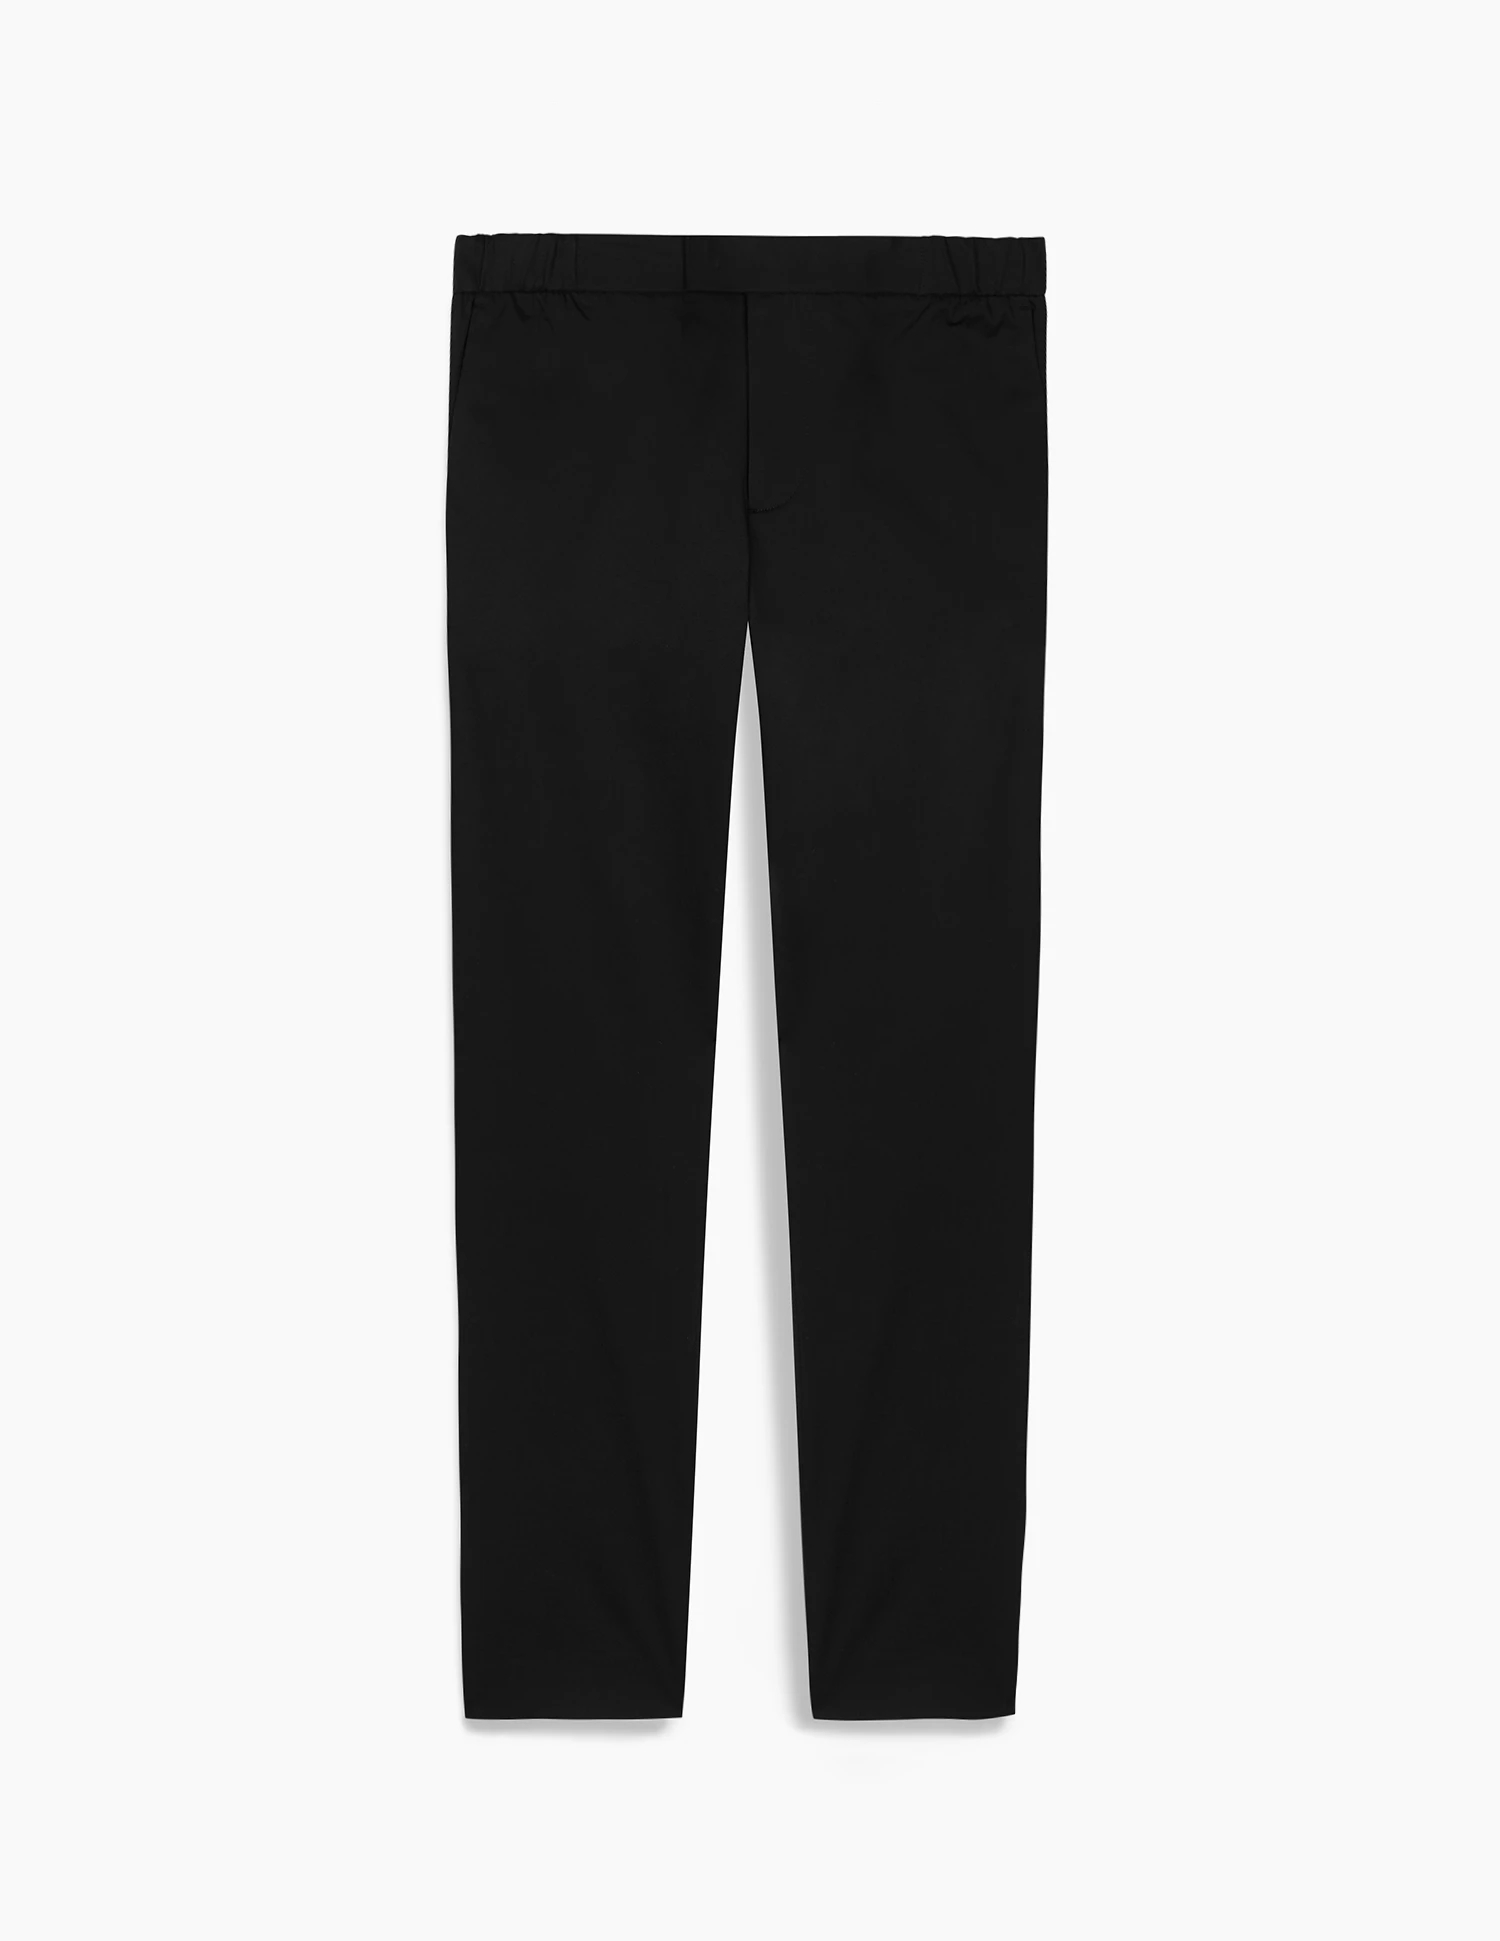 The 24 Trouser